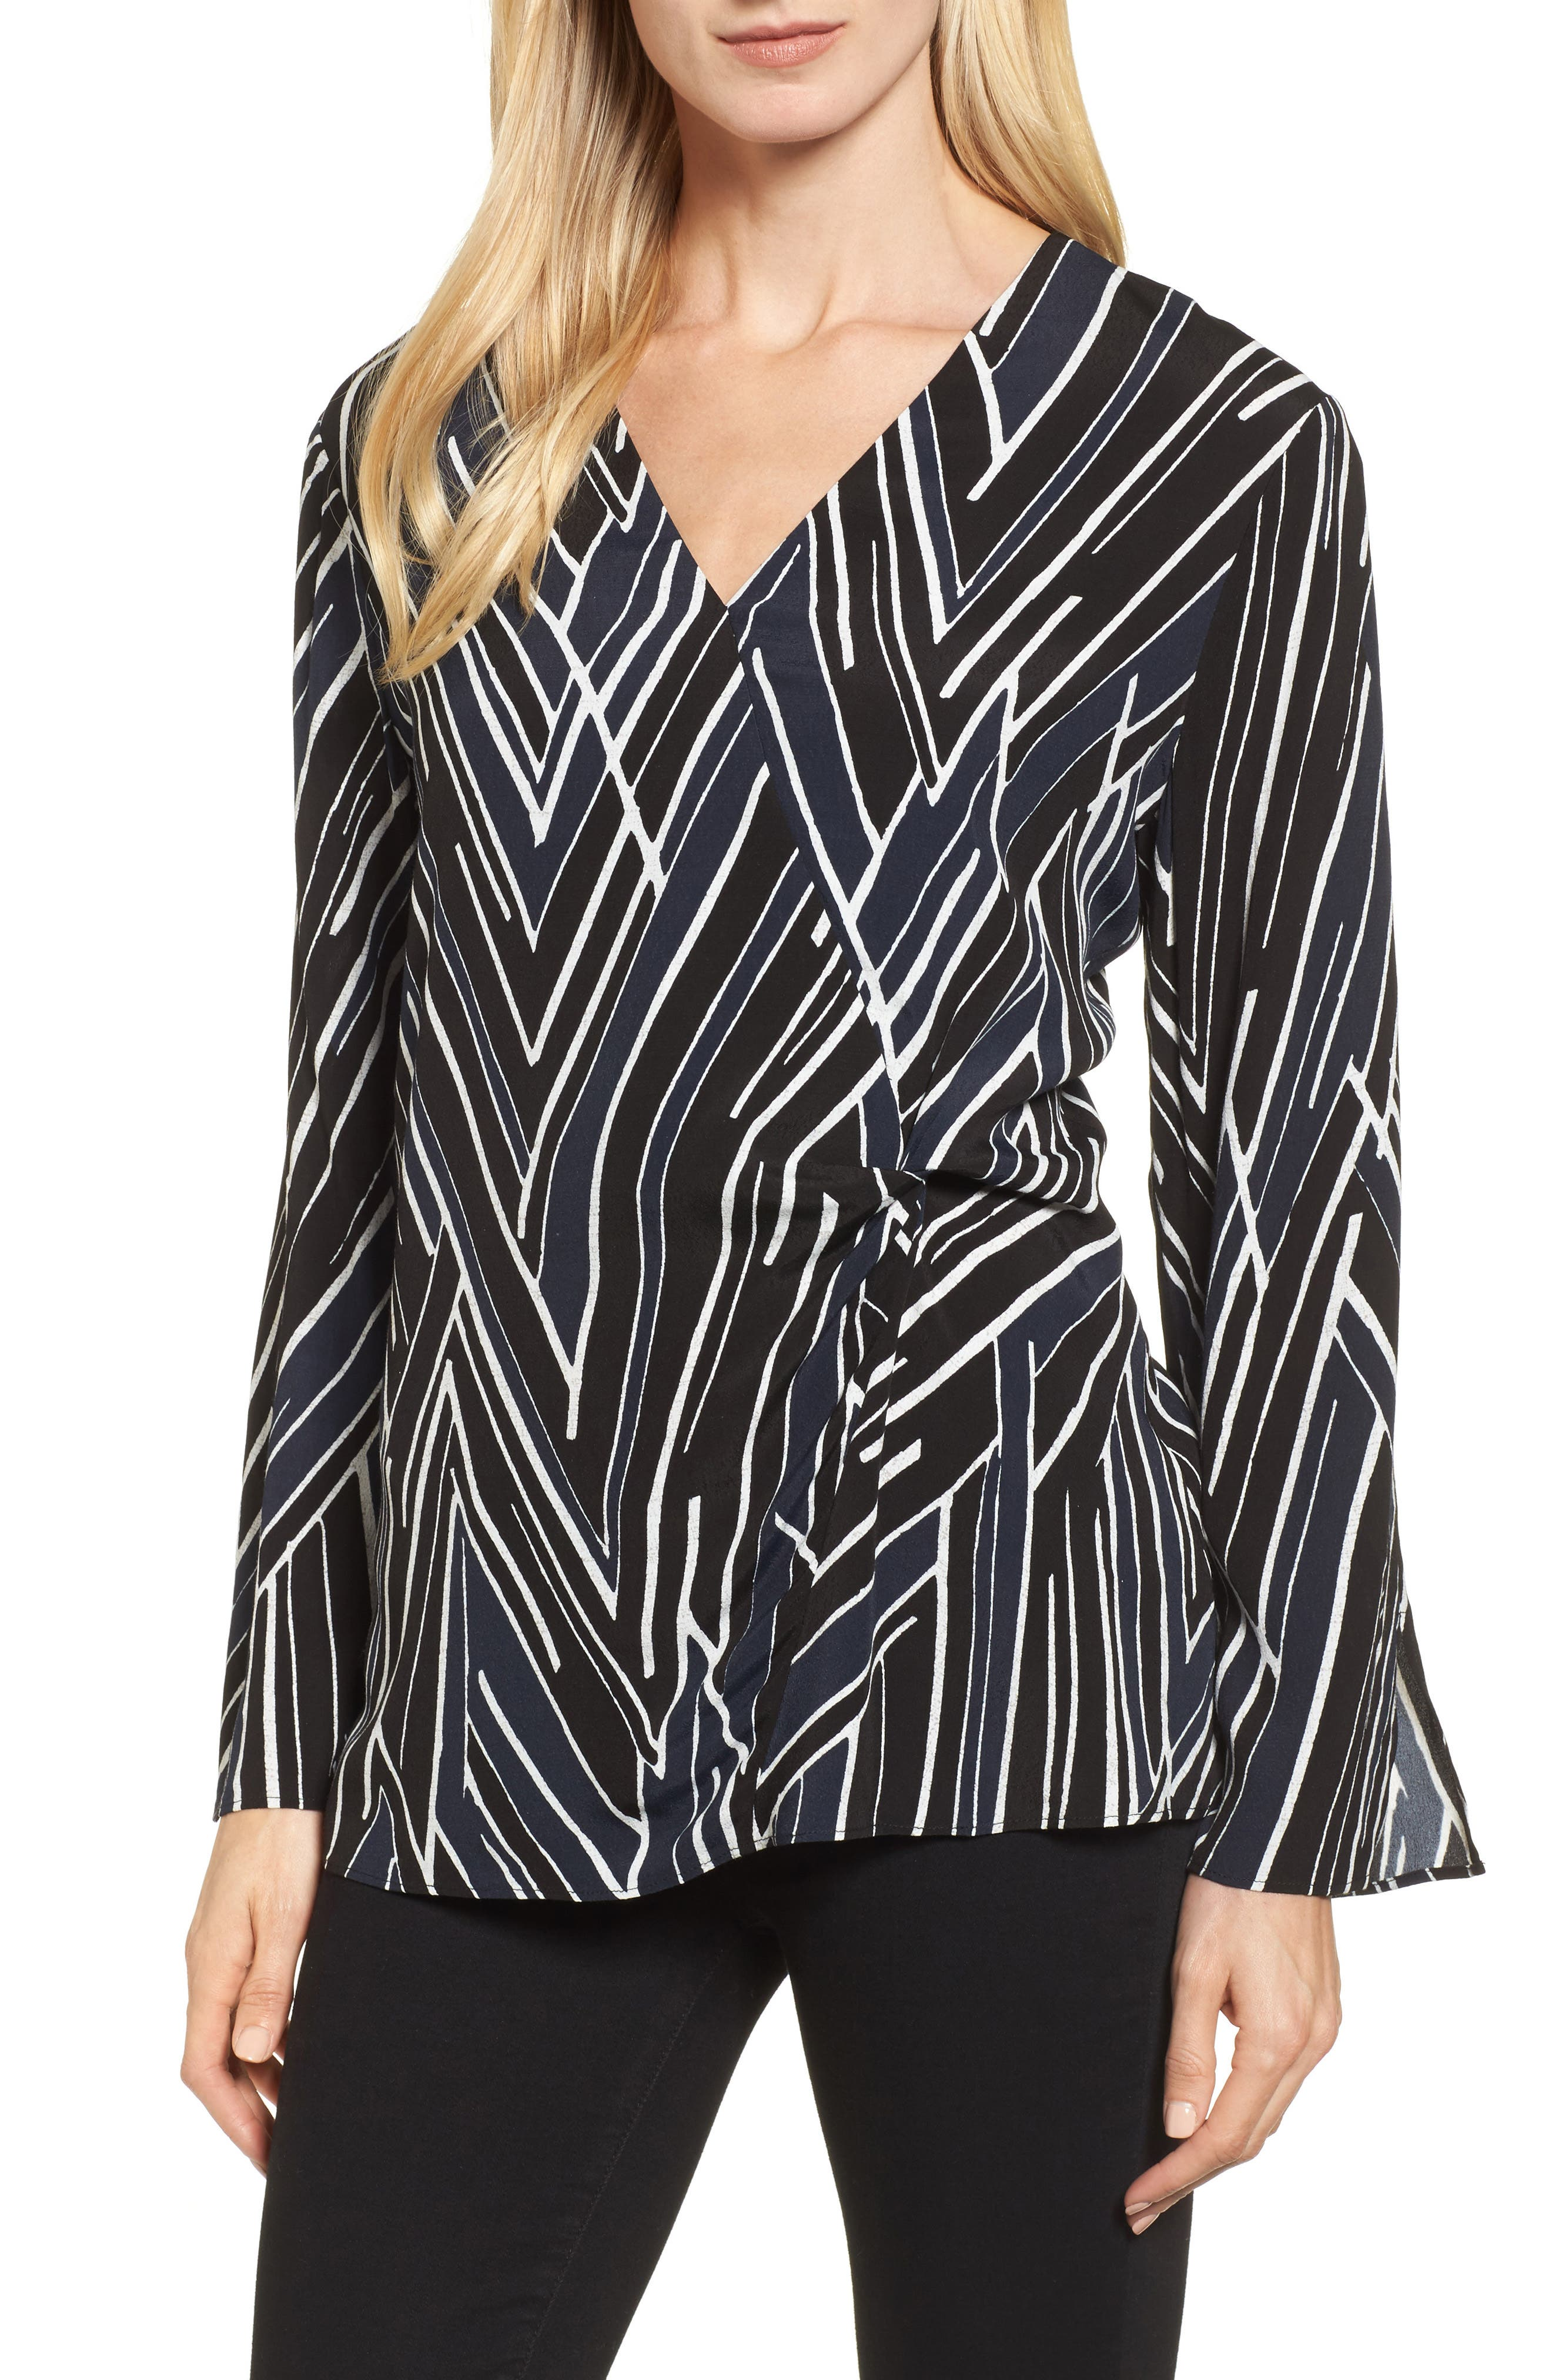 Bells and Whistles Top,                             Main thumbnail 1, color,                             Black Multi